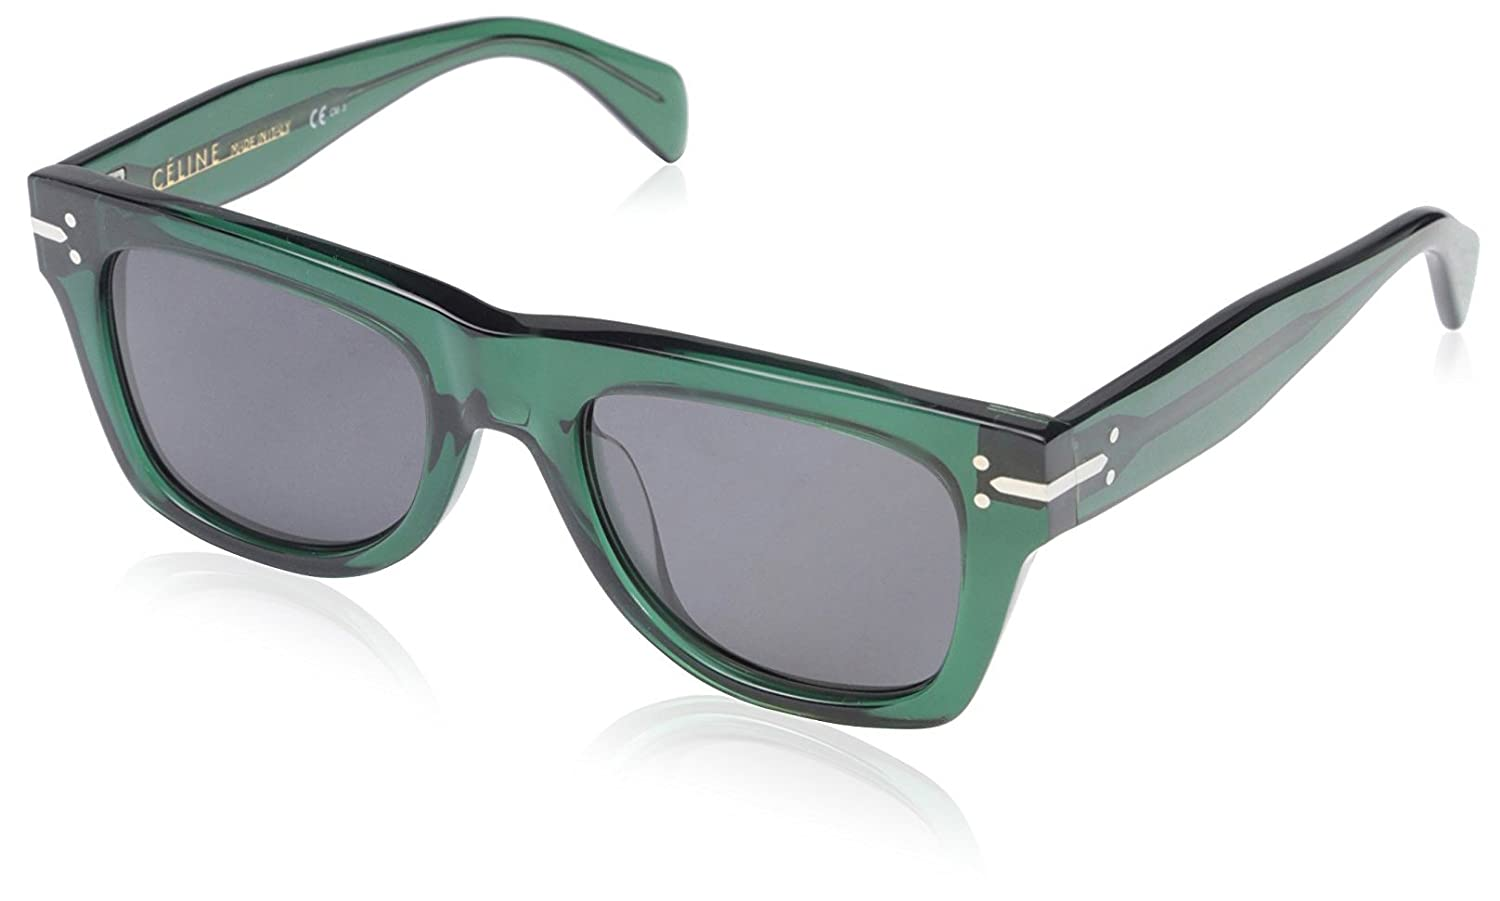 Celine Gafas de Sol CL 41038/S (51 mm) Verde: Amazon.es ...